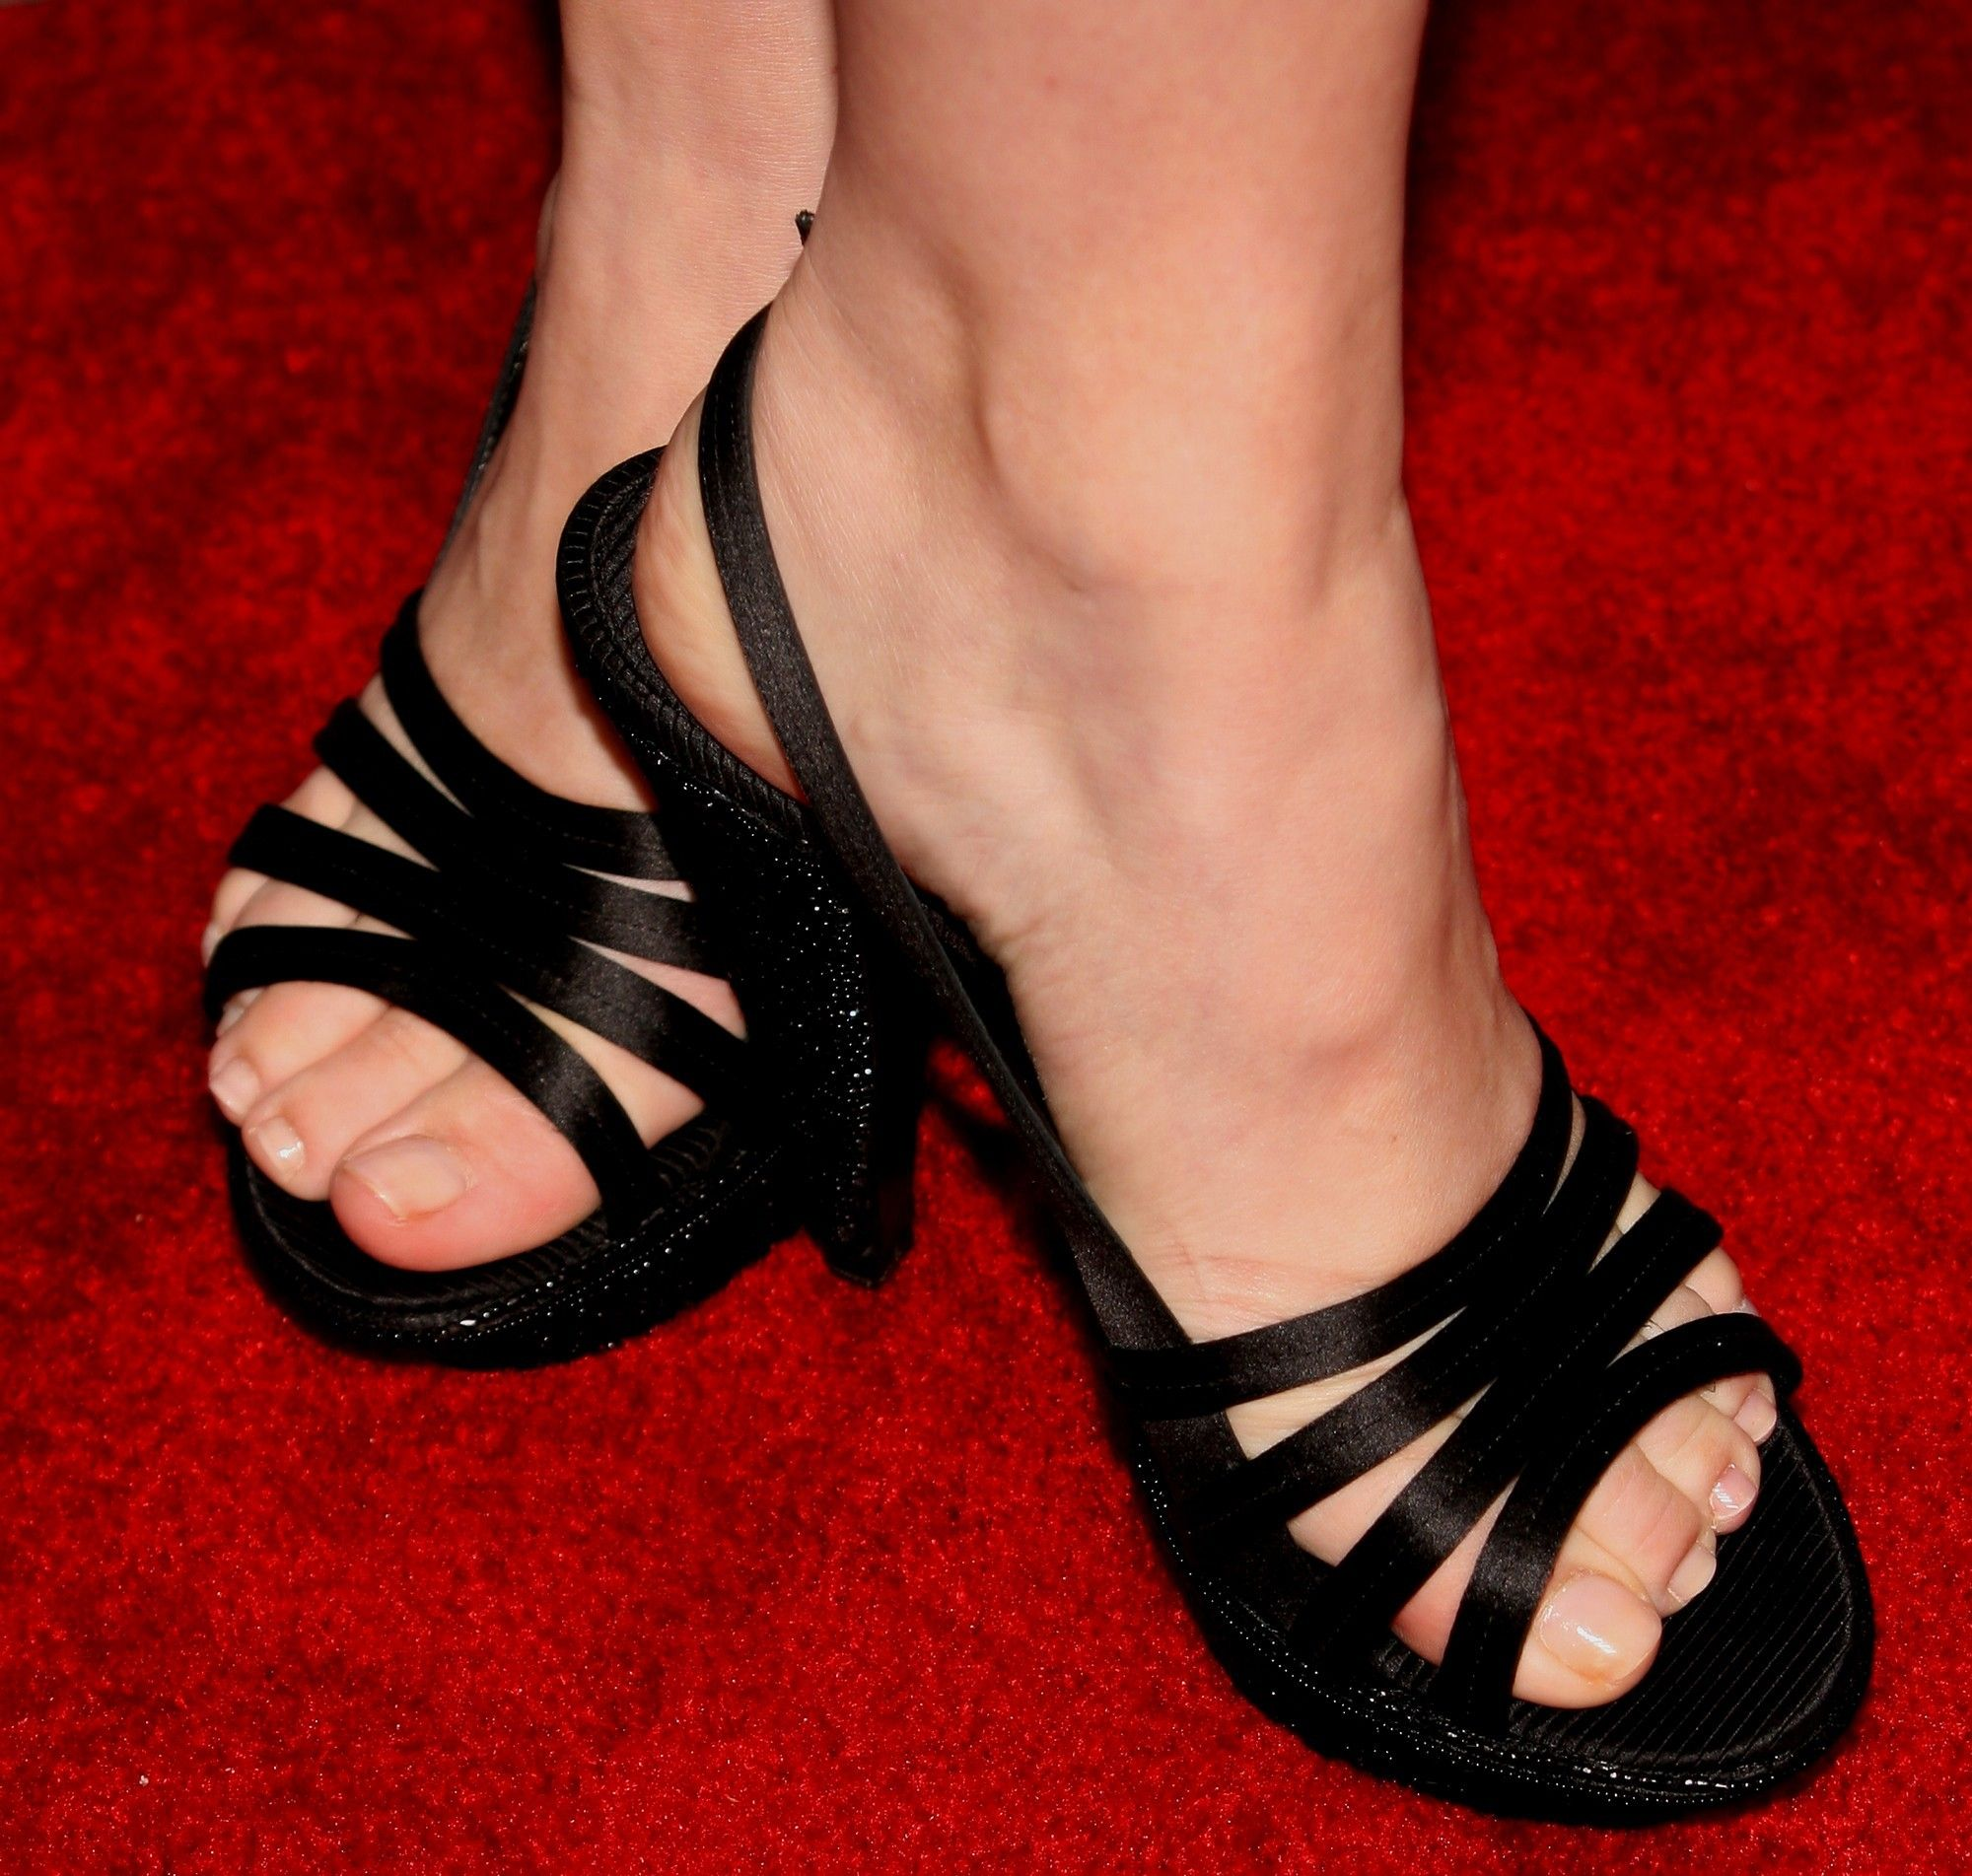 ms jenna fischer xoxo sandals i love sexy feet heels celebrity feet. Black Bedroom Furniture Sets. Home Design Ideas